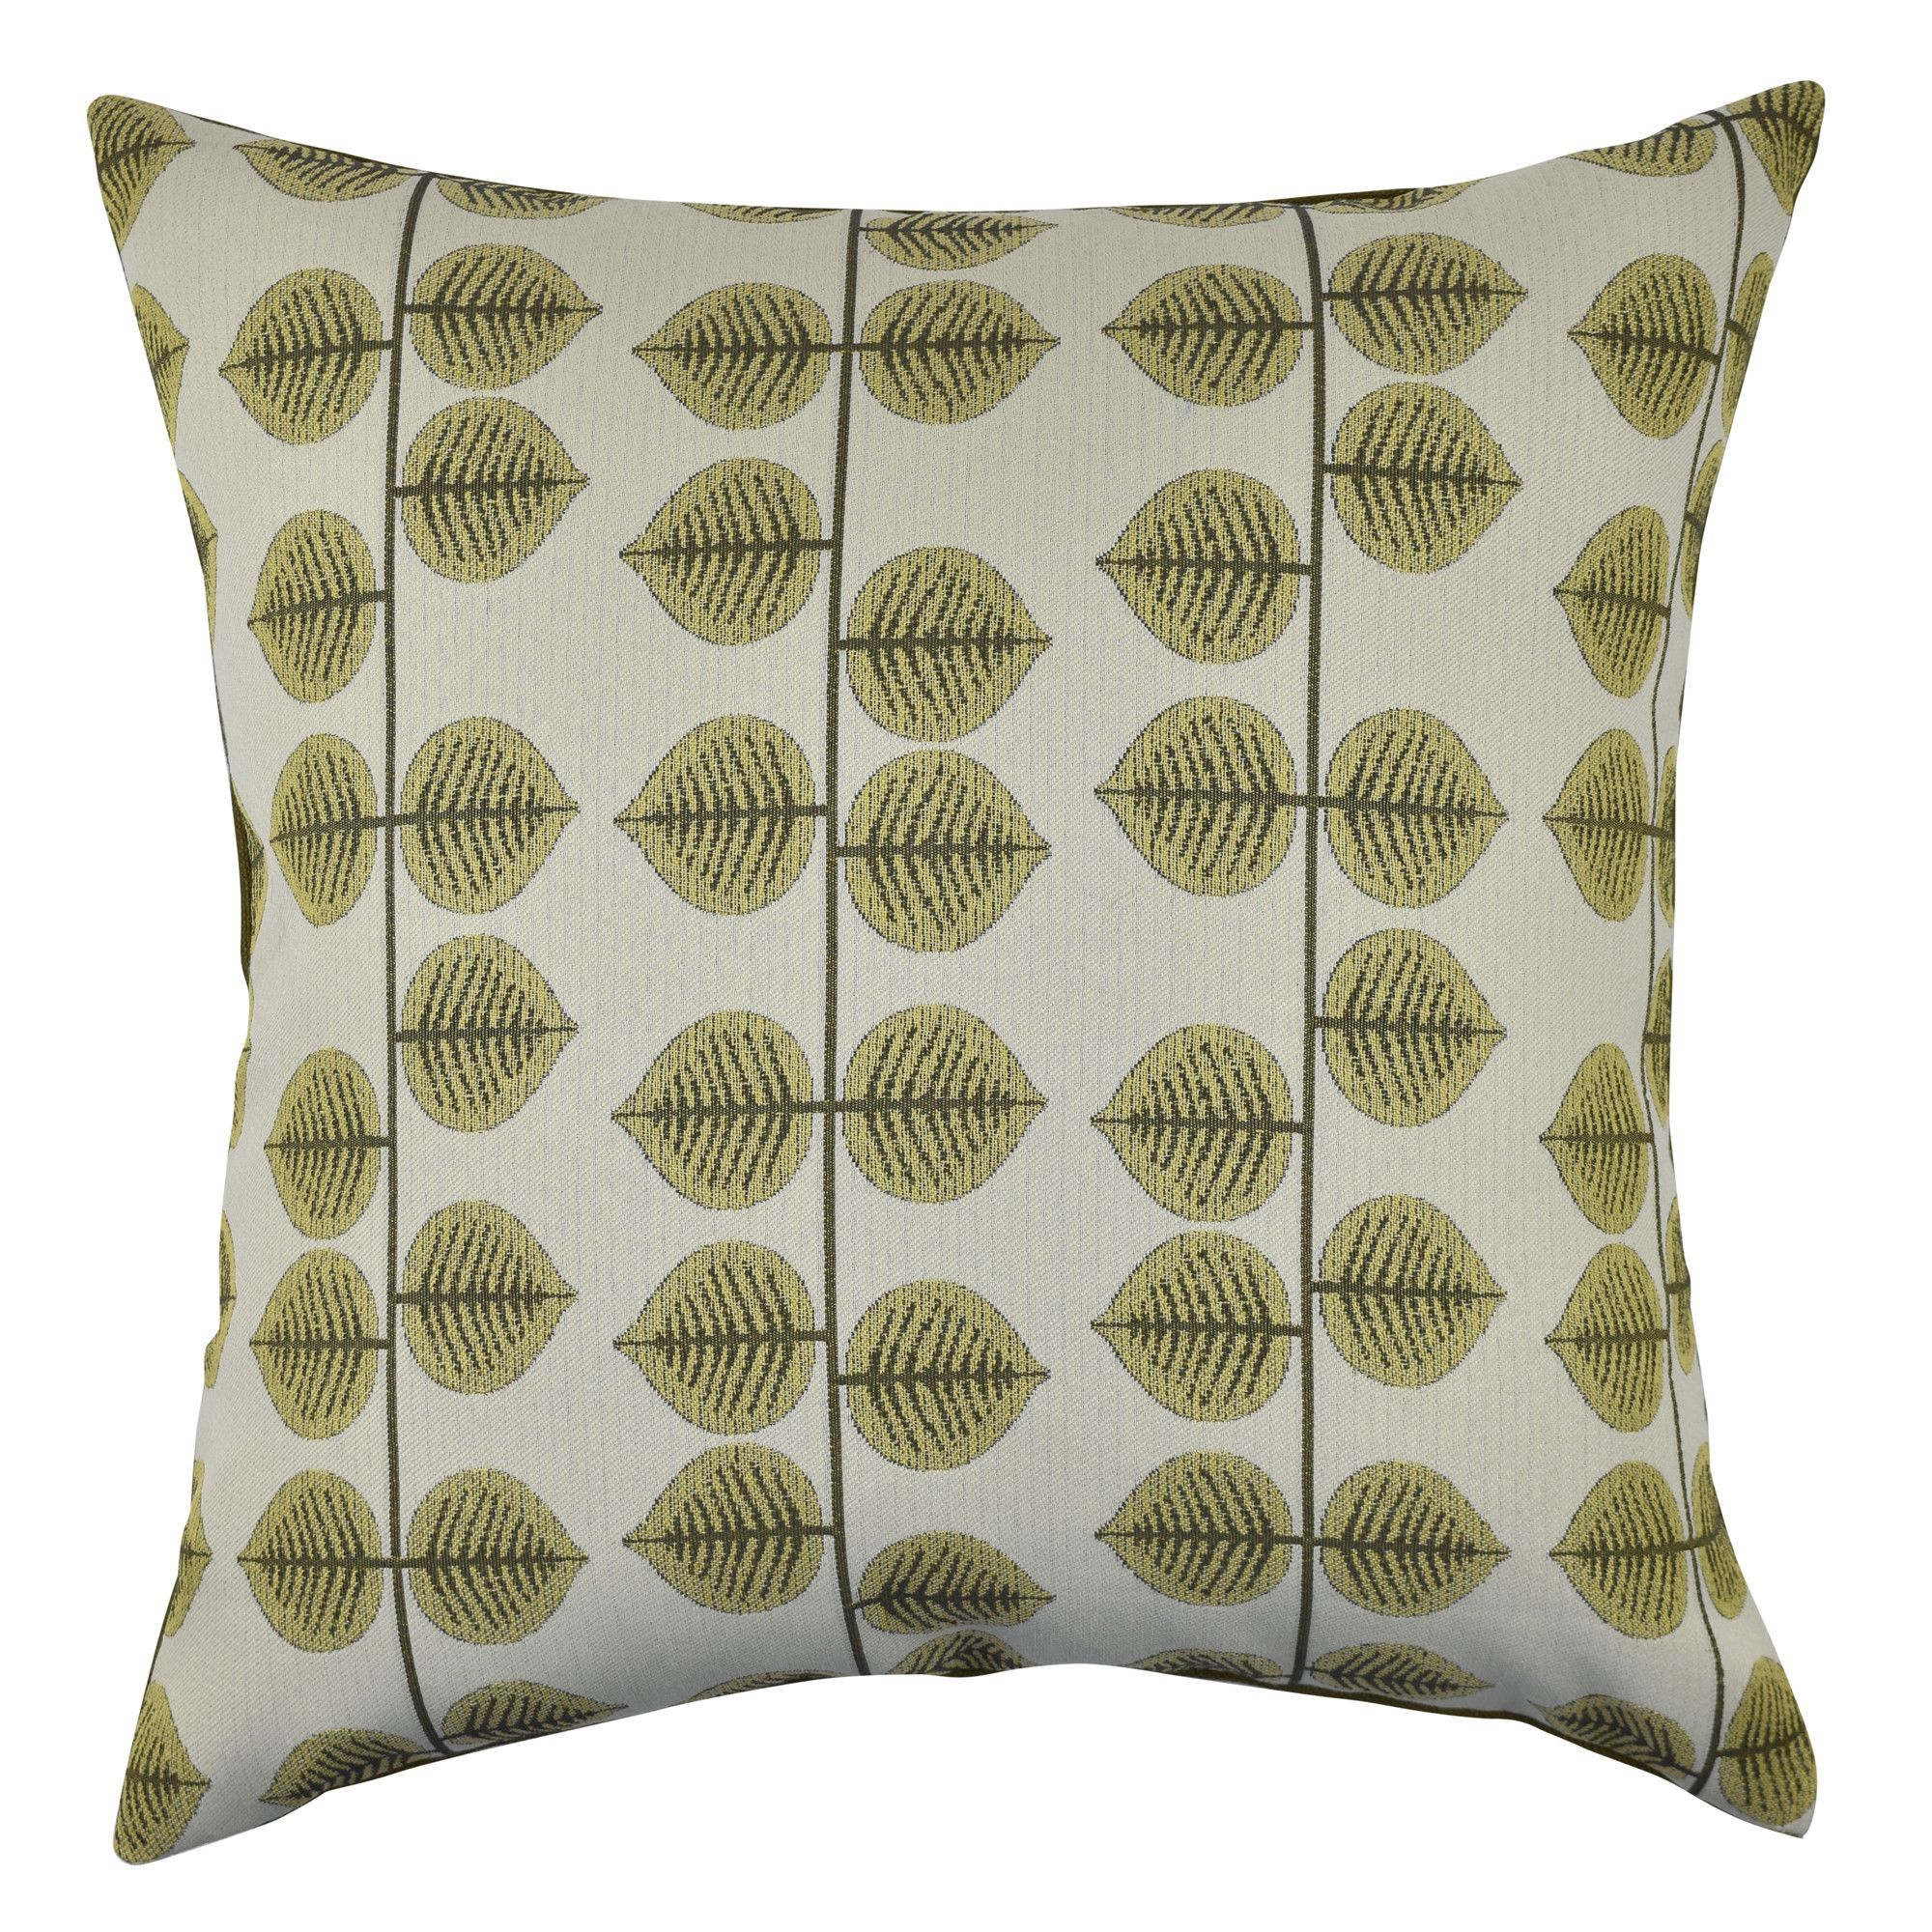 Leaf stripes throw pillow throw pillows pillows and products